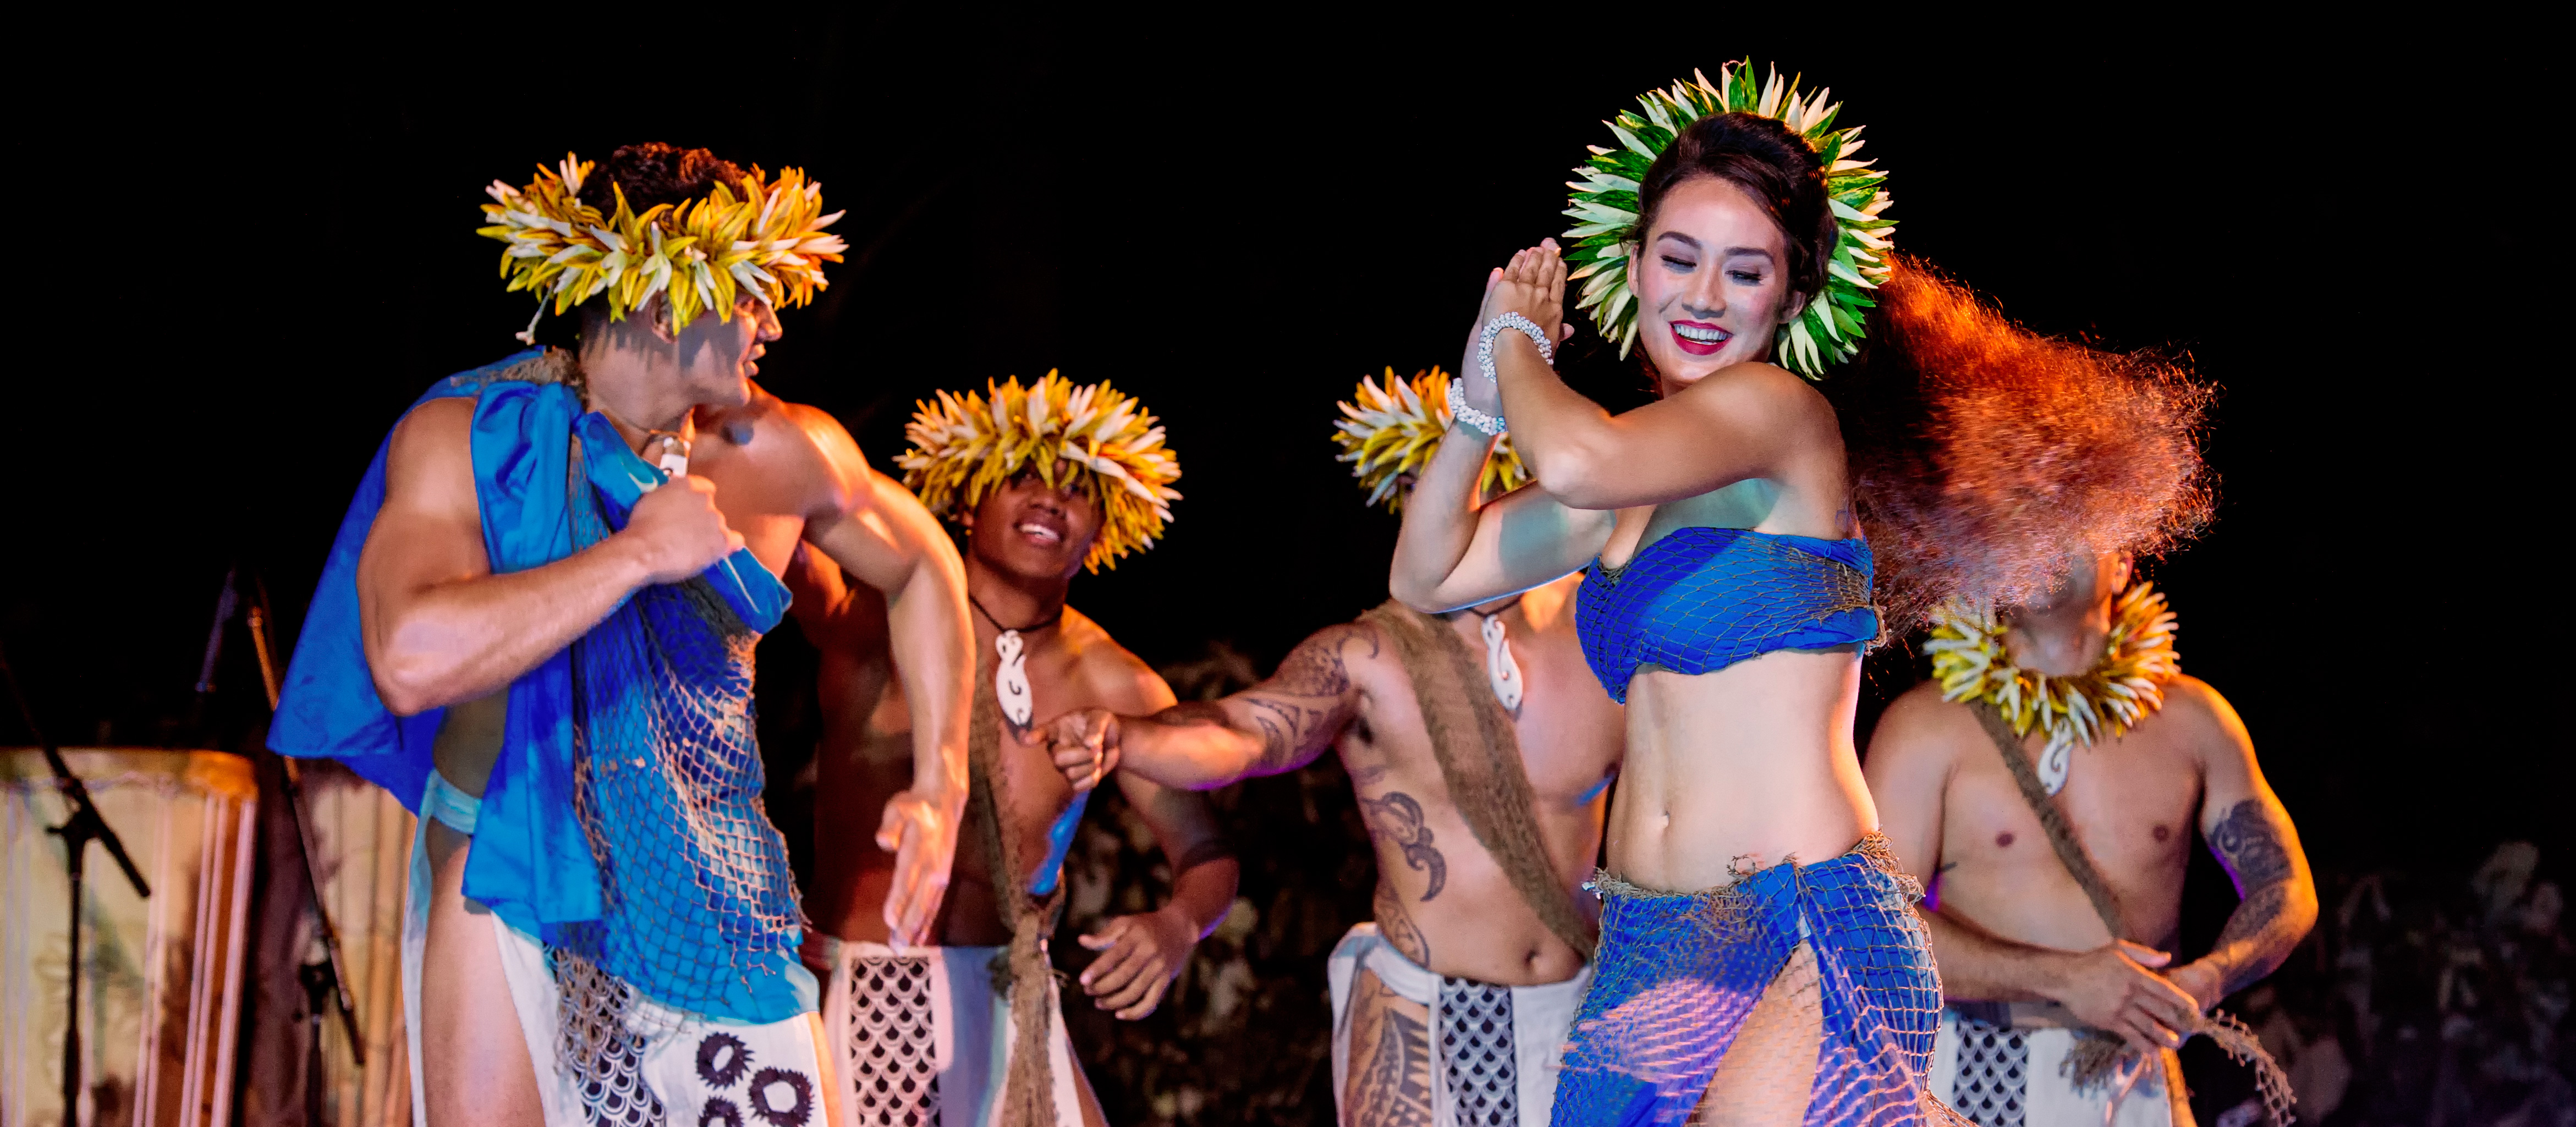 A pair of dancers dressed in beautiful outfits and flowery head dresses perform a dance as three male dancers look on behind them.